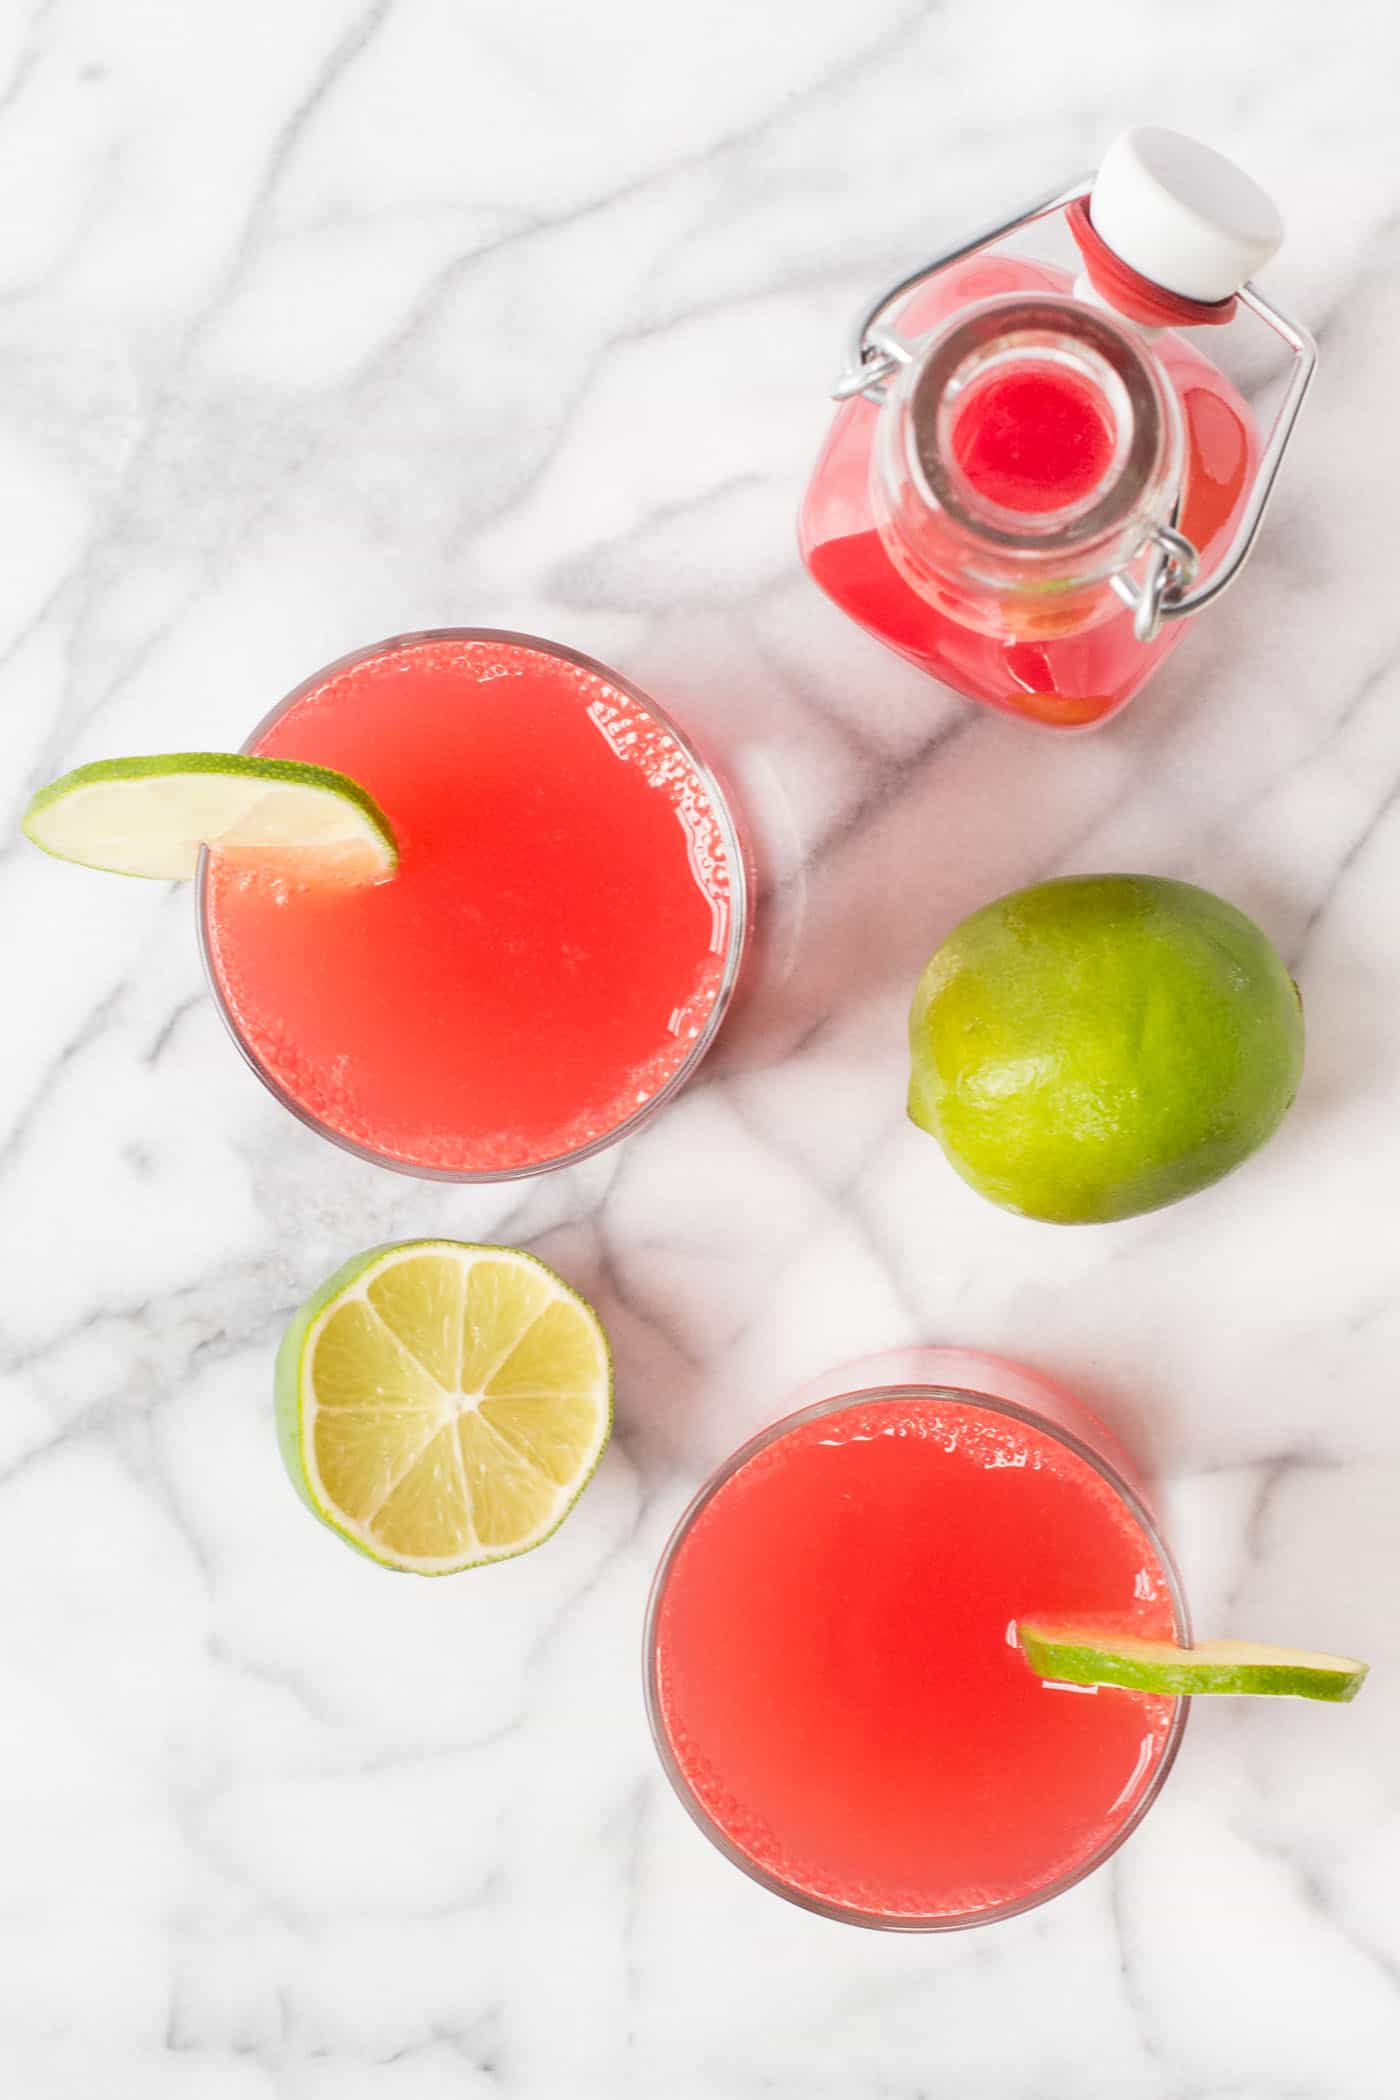 How to make Watermelon Lime Seltzer